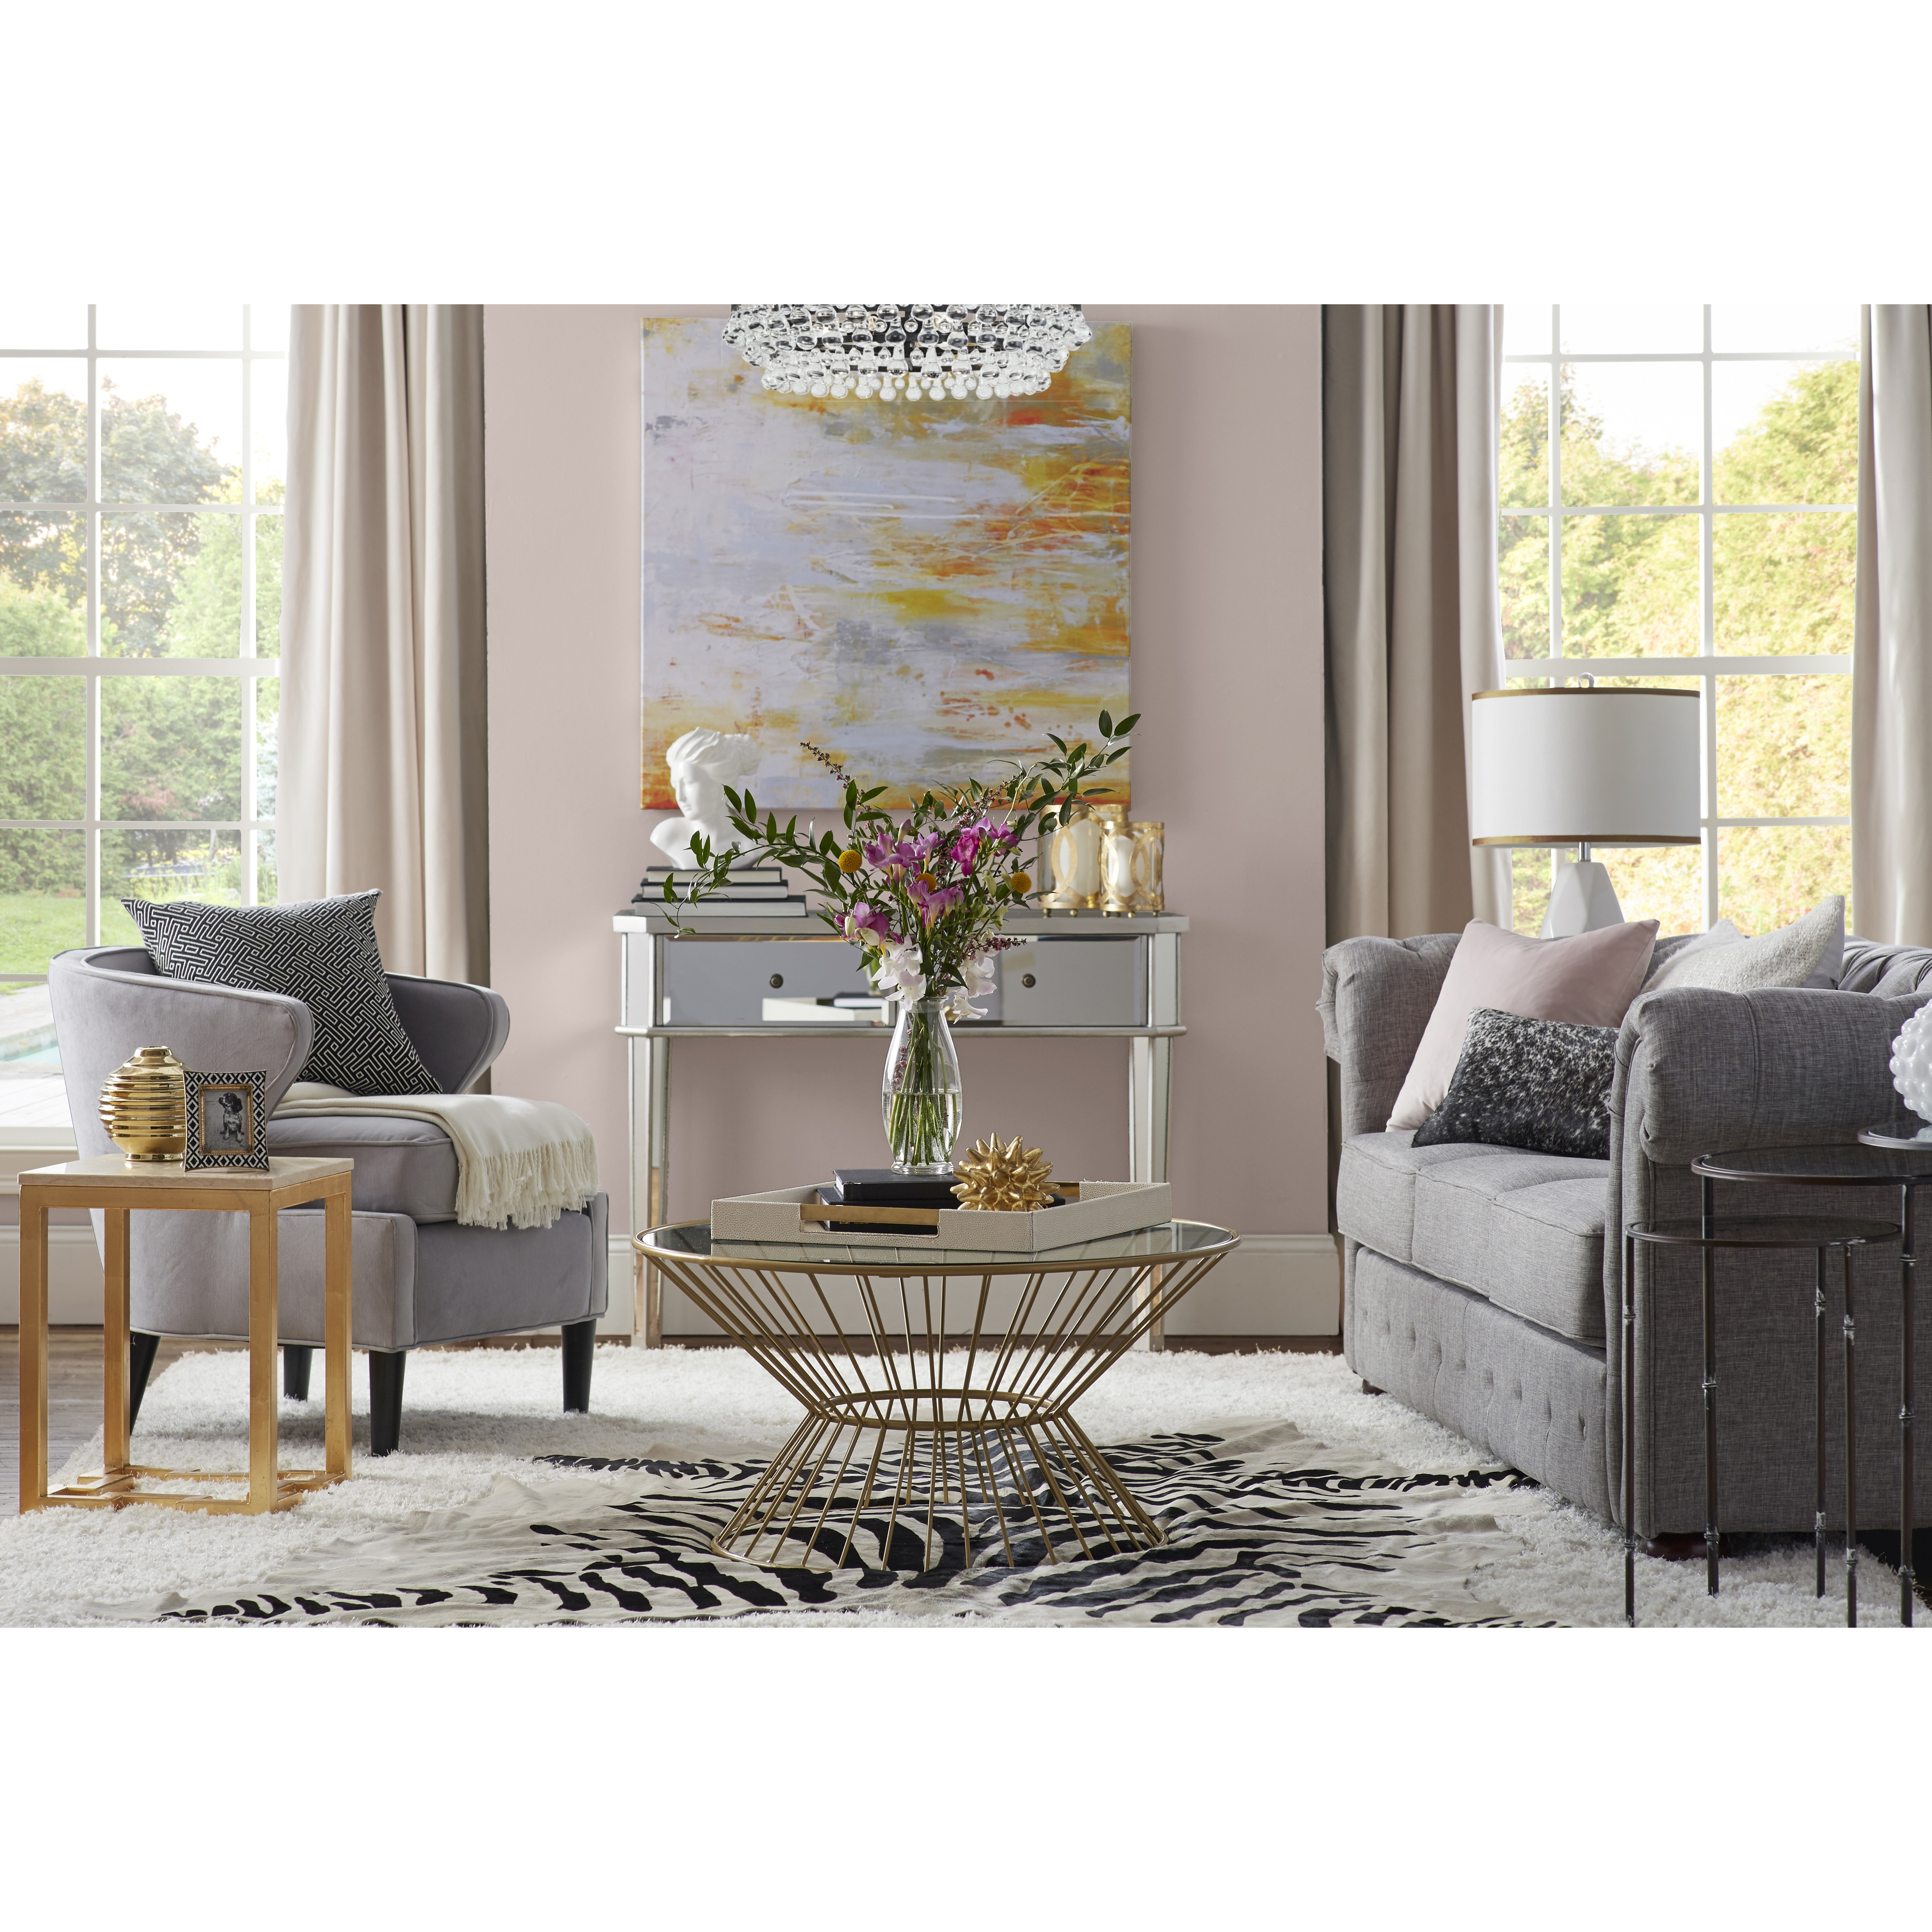 2019 Affordable Tufted Sofas With Regard To Affordable Tufted Sofa – Nrhcares (View 2 of 20)